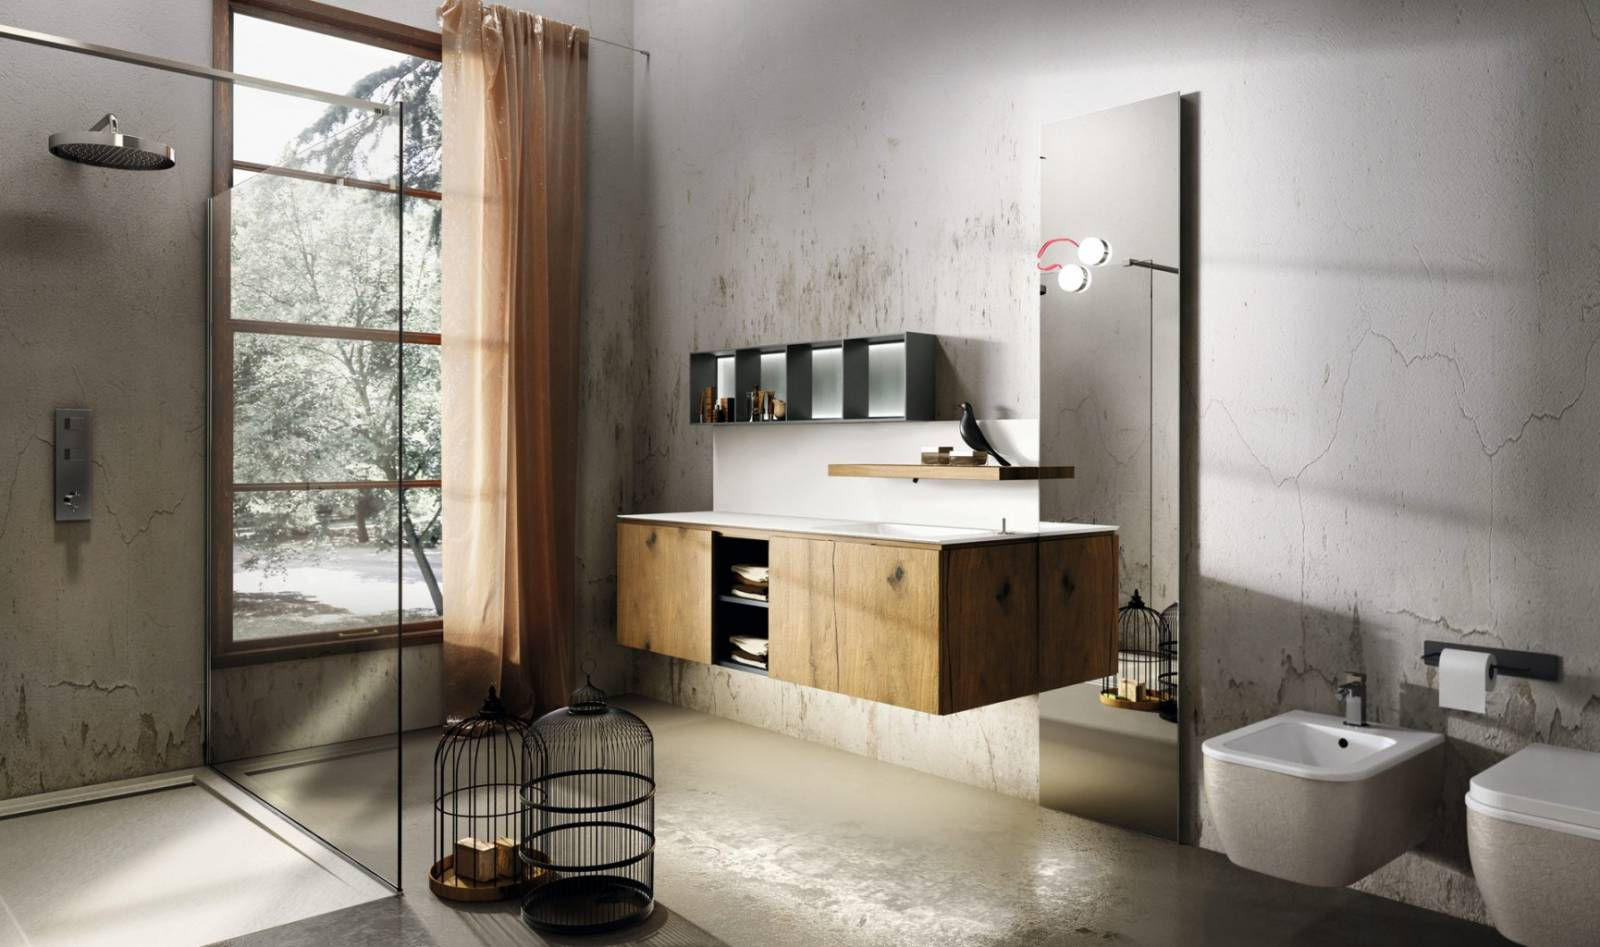 salle de bain industrielle carr d 39 eau. Black Bedroom Furniture Sets. Home Design Ideas